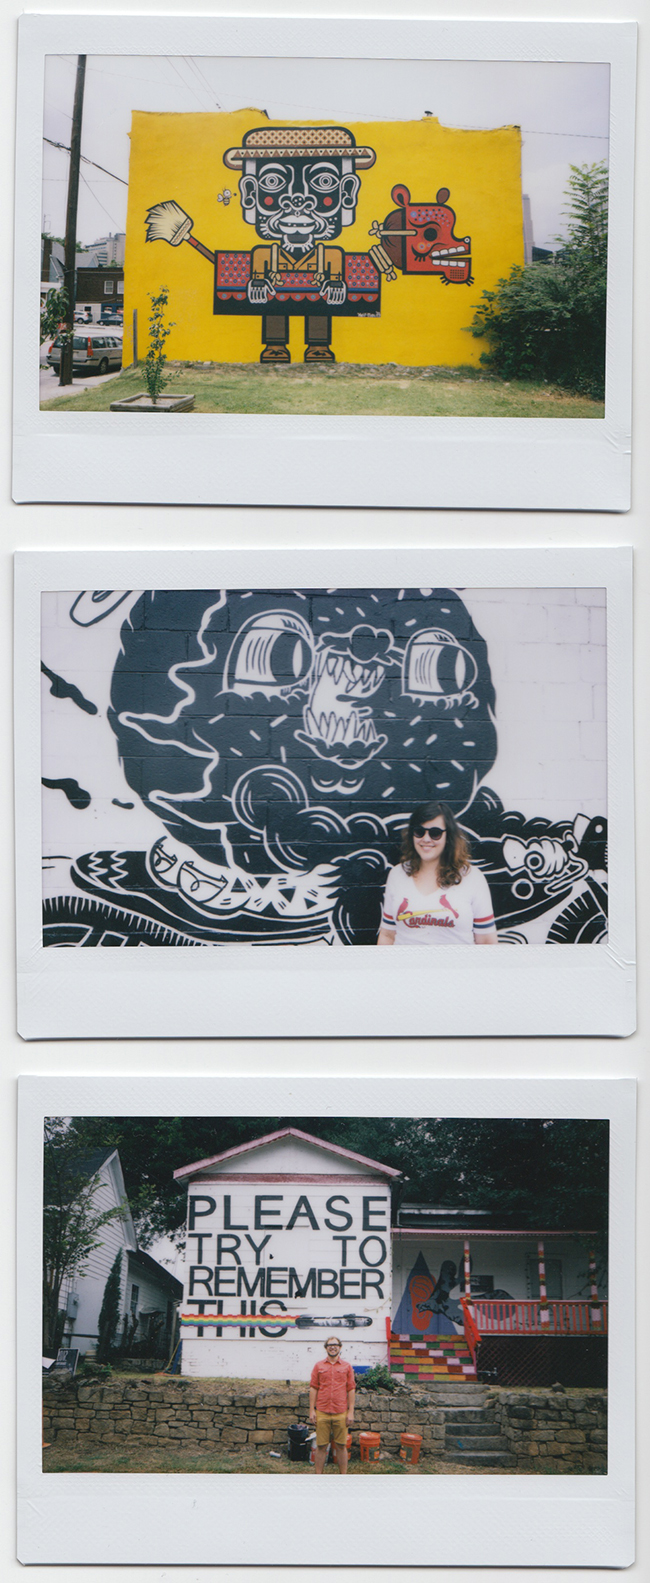 instax living walls conference 2012